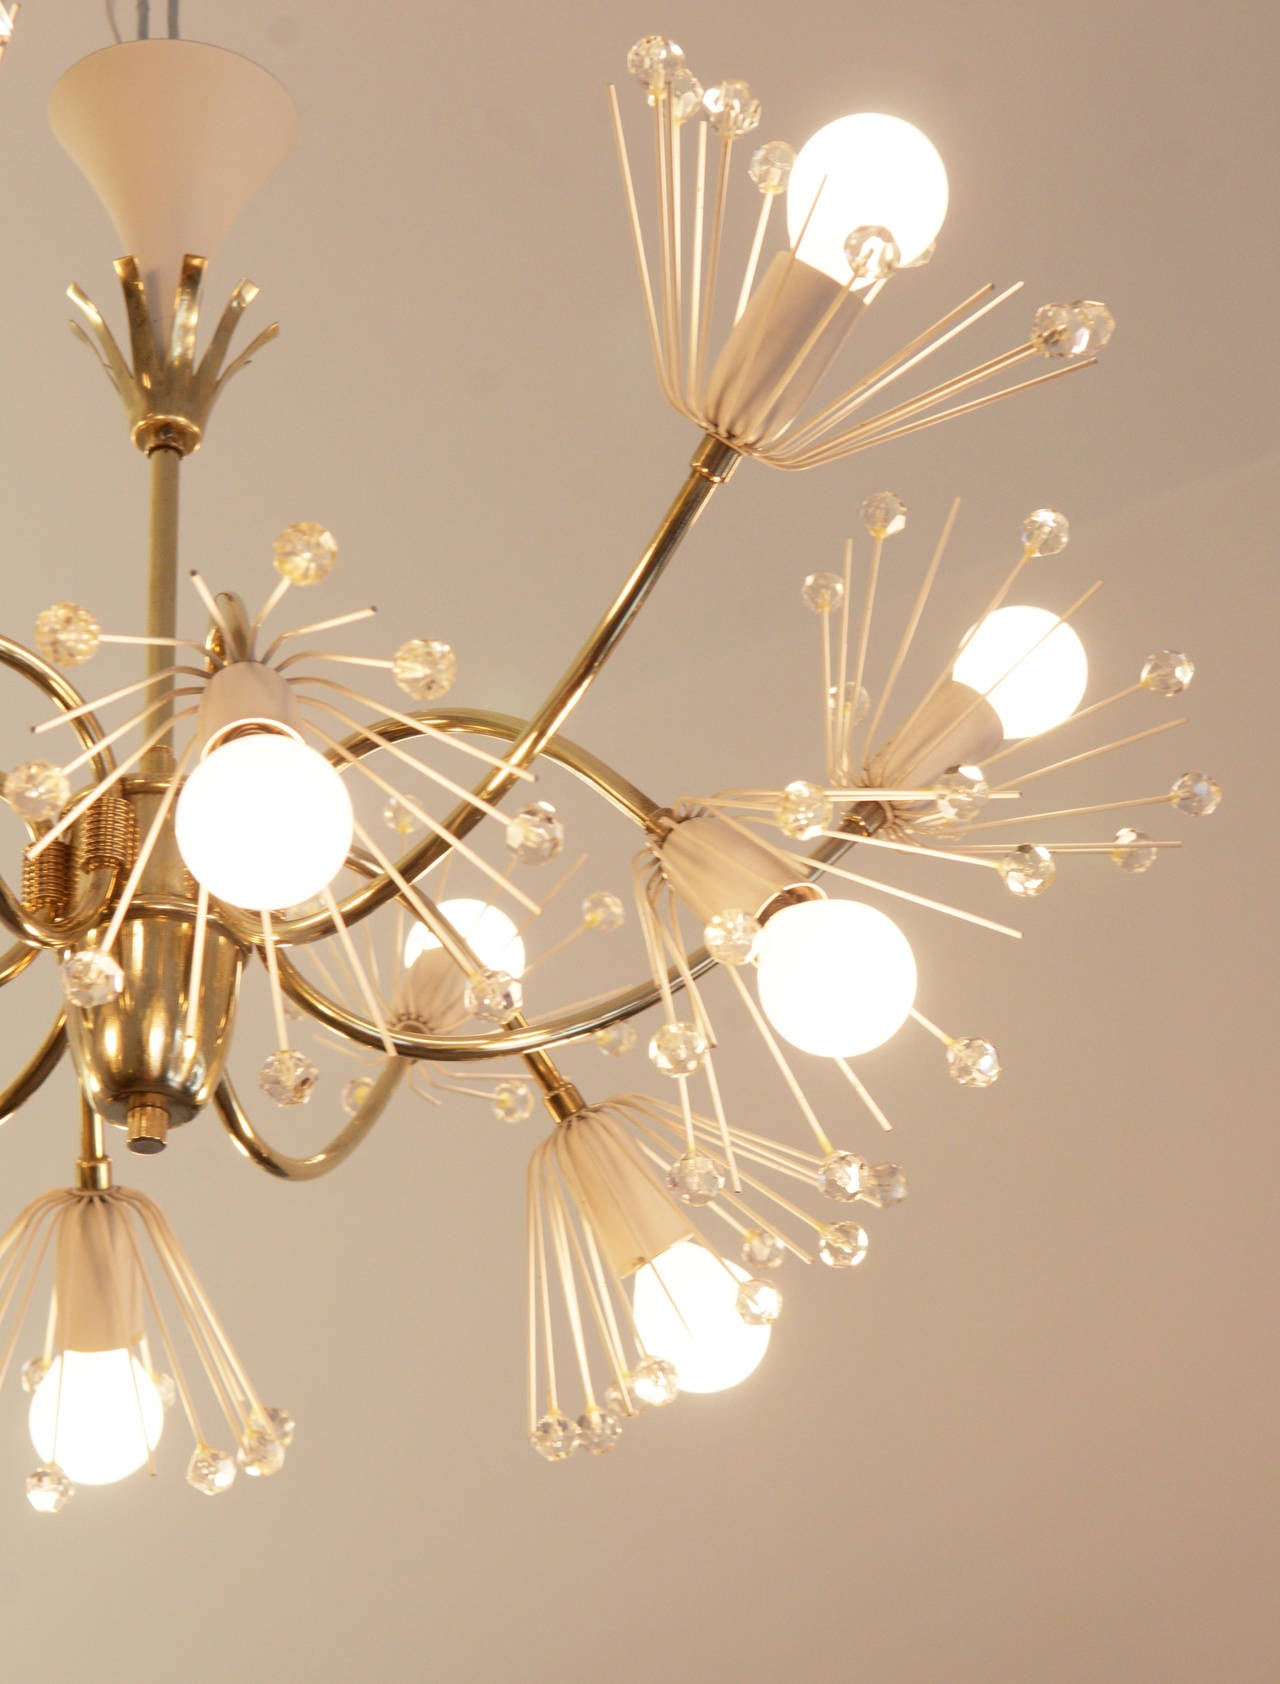 Mid-20th Century Large Snowflakes Chandelier by Emil Stejnar for Rupert Nikoll Vienna For Sale